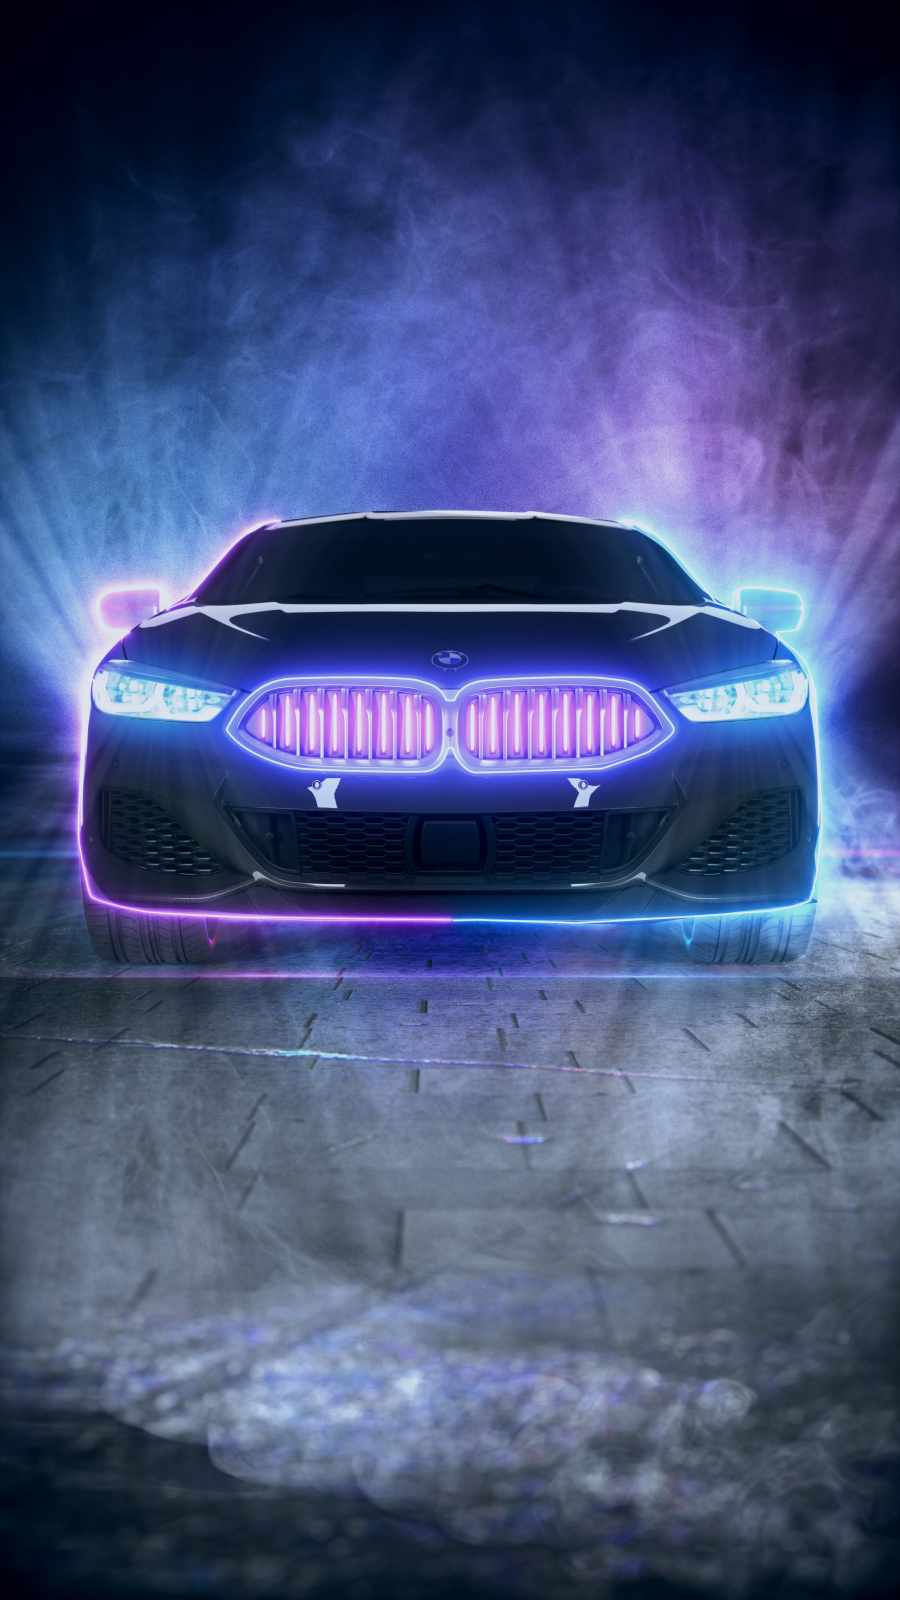 BMW Neon iPhone Wallpaper